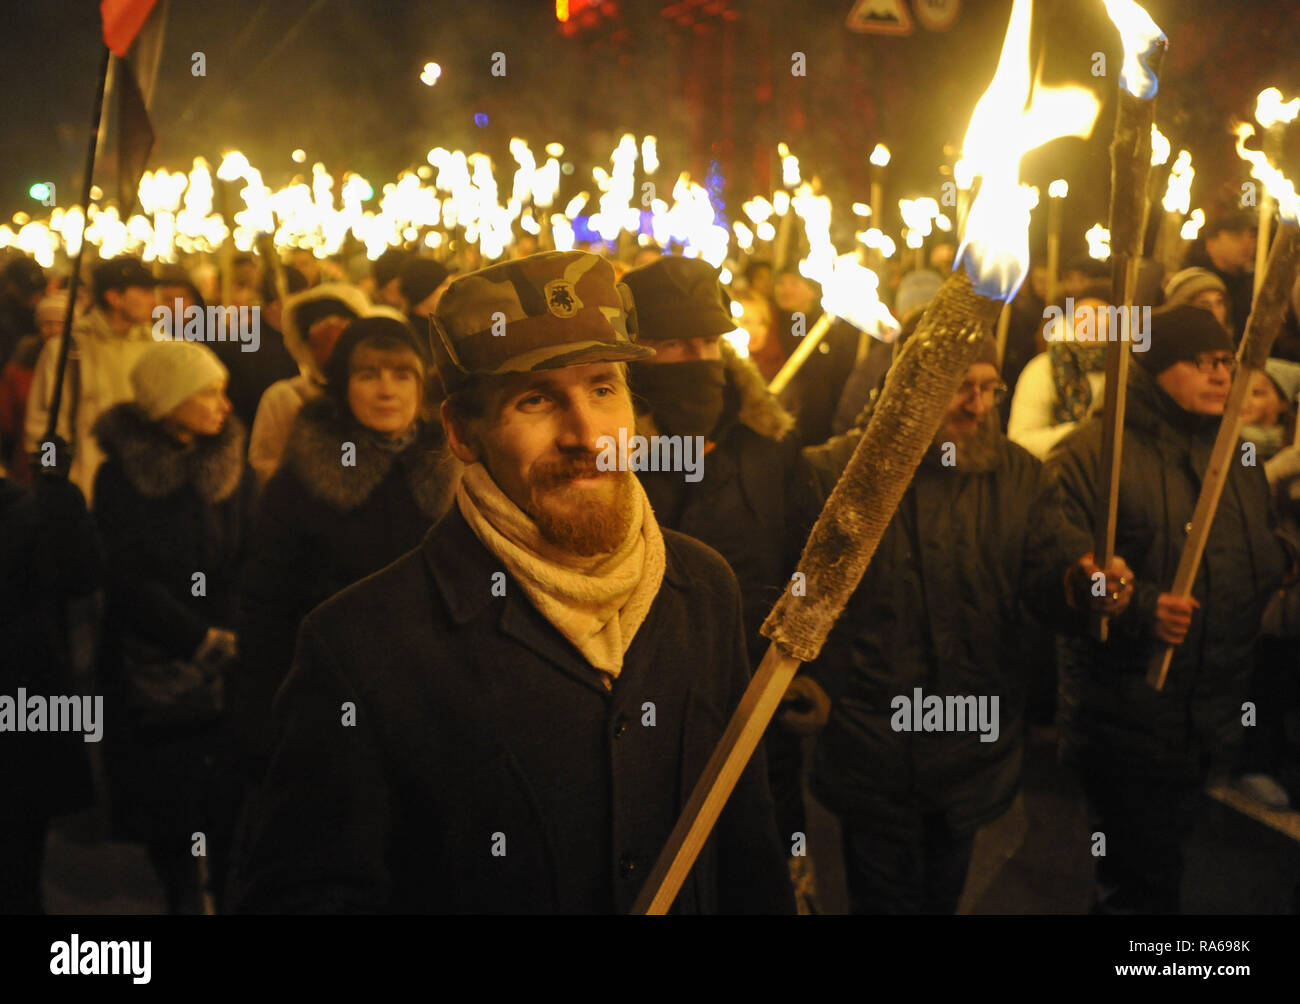 Kiev, Ukraine. 1st Jan, 2019. Activists of Ukrainian nationalist parties are seen holding torches and flares during the rally on the occasion of 110th birth anniversary of Stepan Bandera, founder of a Ukrainian Insurgent Army. In 1959 Stepan Bandera was killed by a KGB agent Bogdan Stashinsky in Germany. Credit: Sergei Chuzavkov/SOPA Images/ZUMA Wire/Alamy Live News - Stock Image